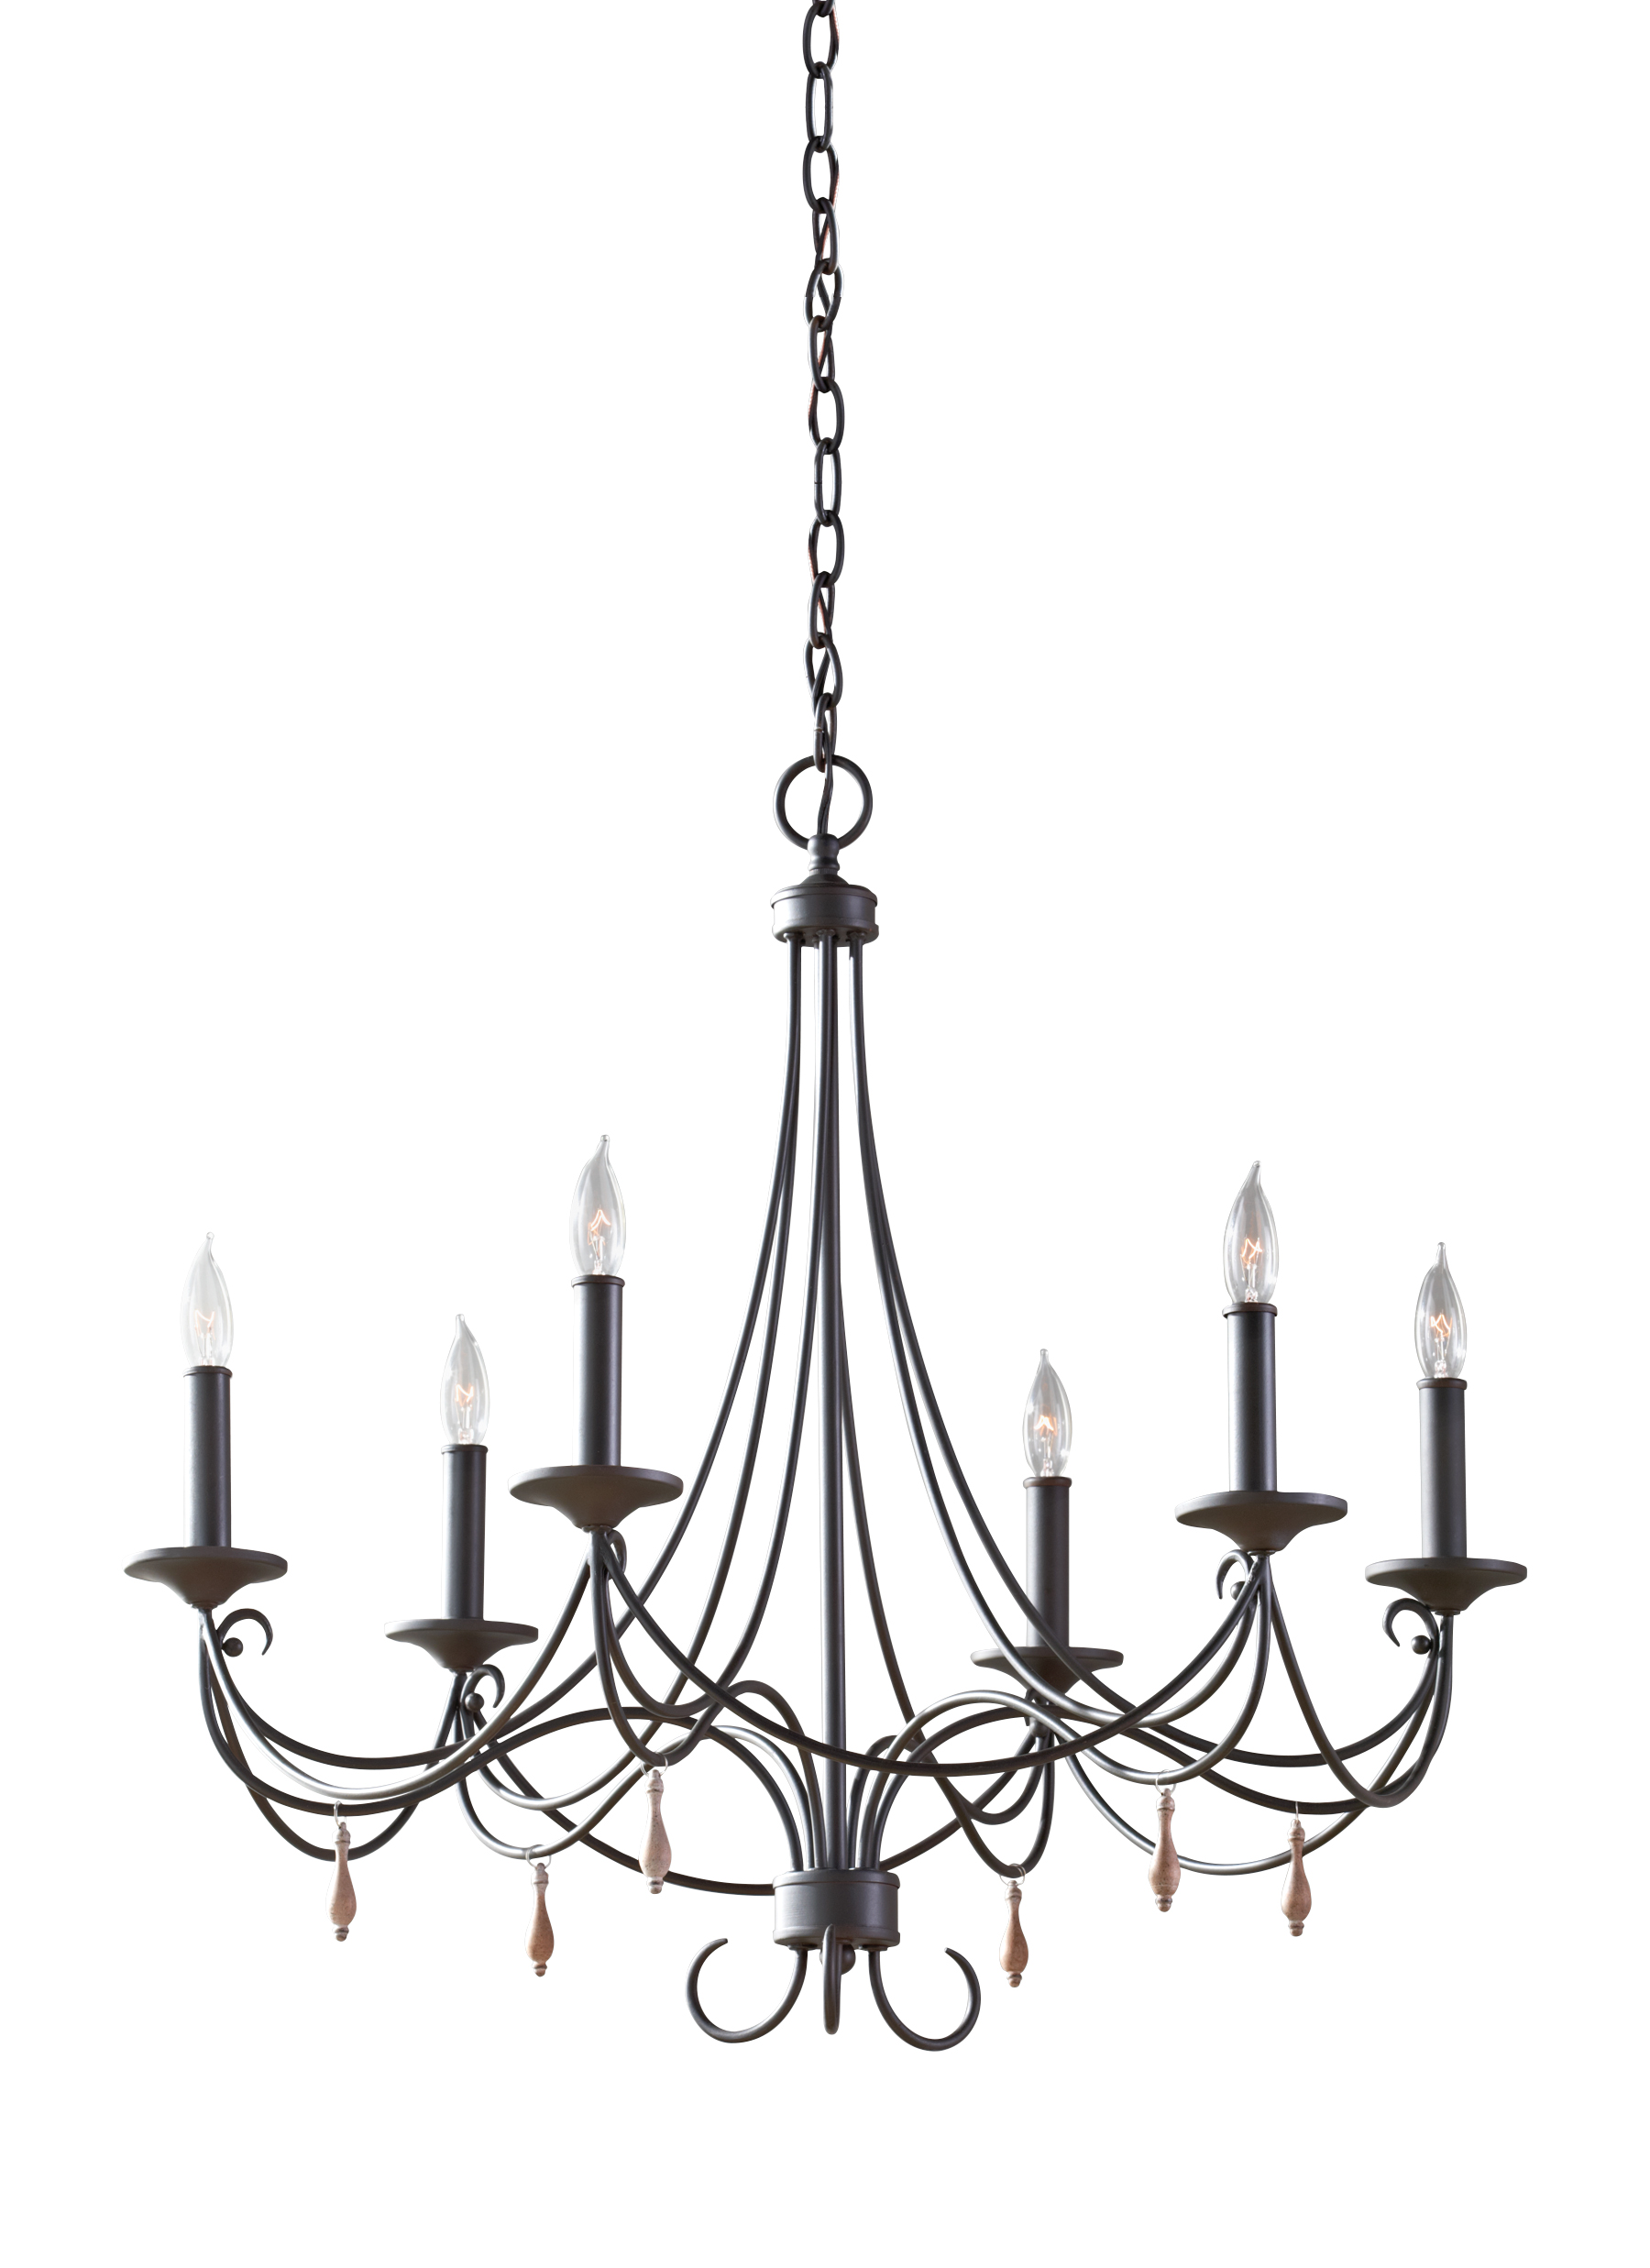 F2746 6RI 6 Light Single Tier Chandelier Rustic Iron